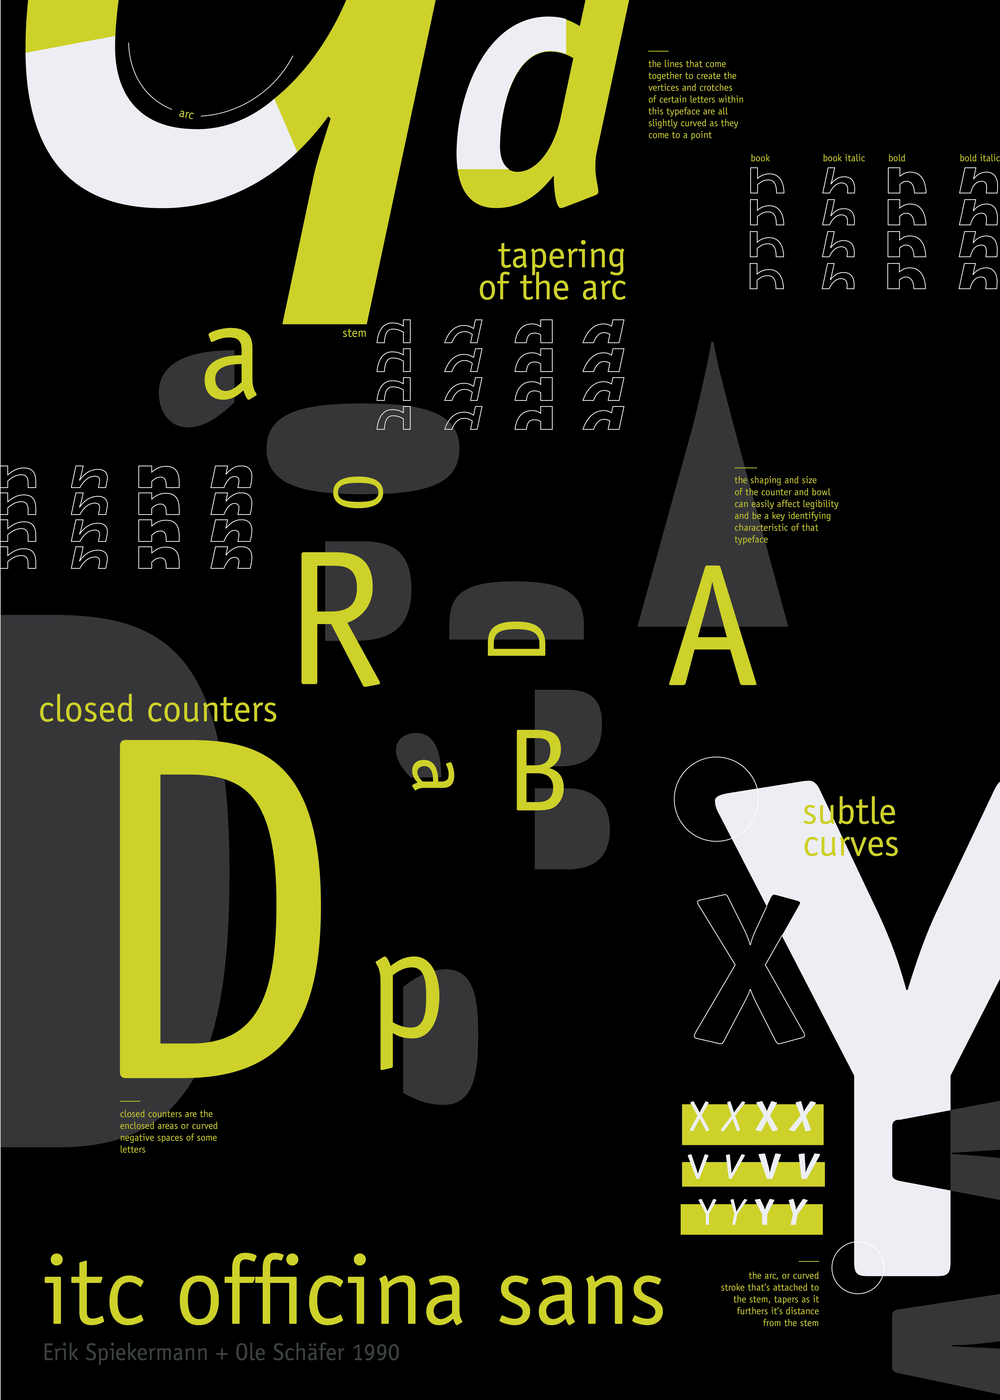 FinalPoster_Iterations-04.png